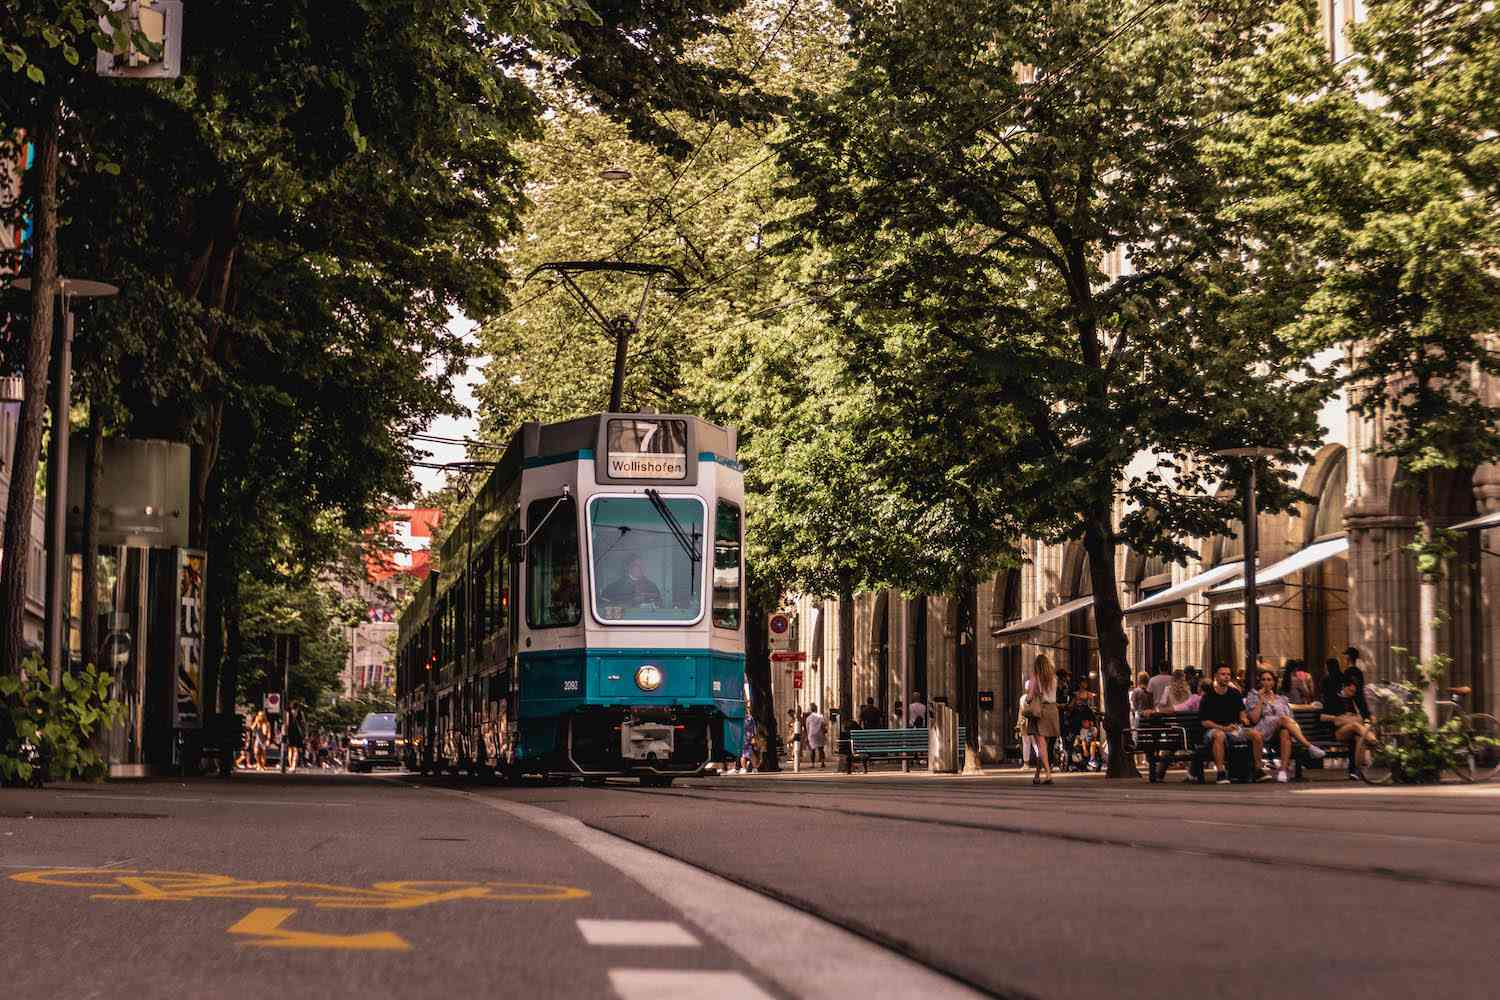 A tram on the streets of Zurich